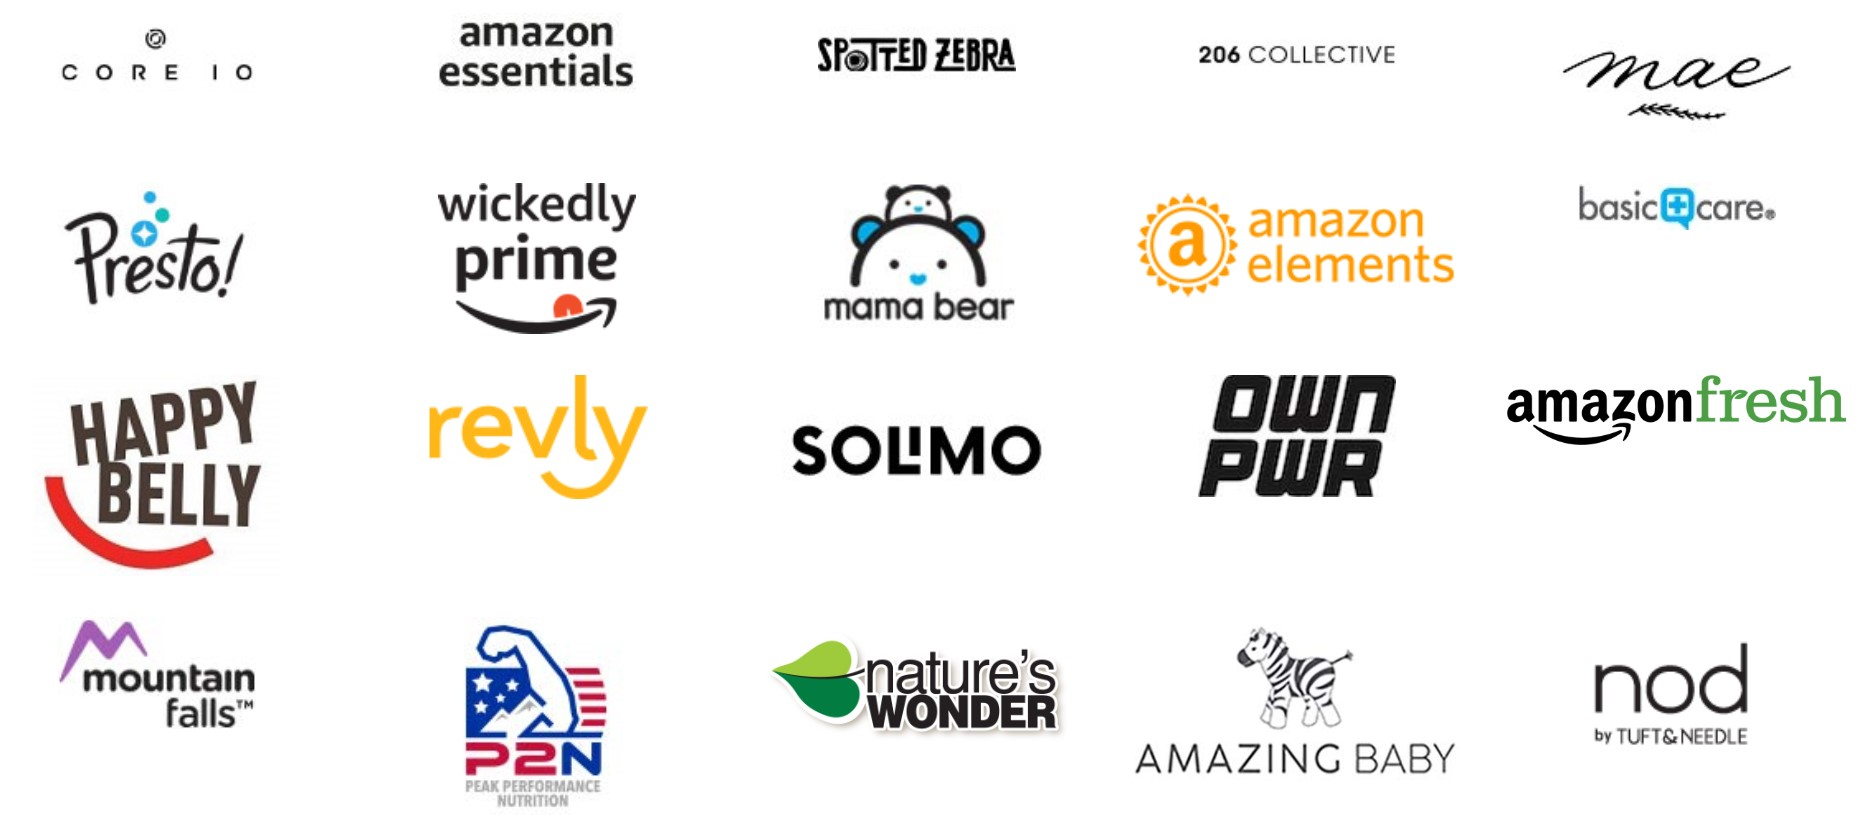 Amazon currently has 146 private label brands, selling over 7,200 products that compete with normal 3P merchant products.